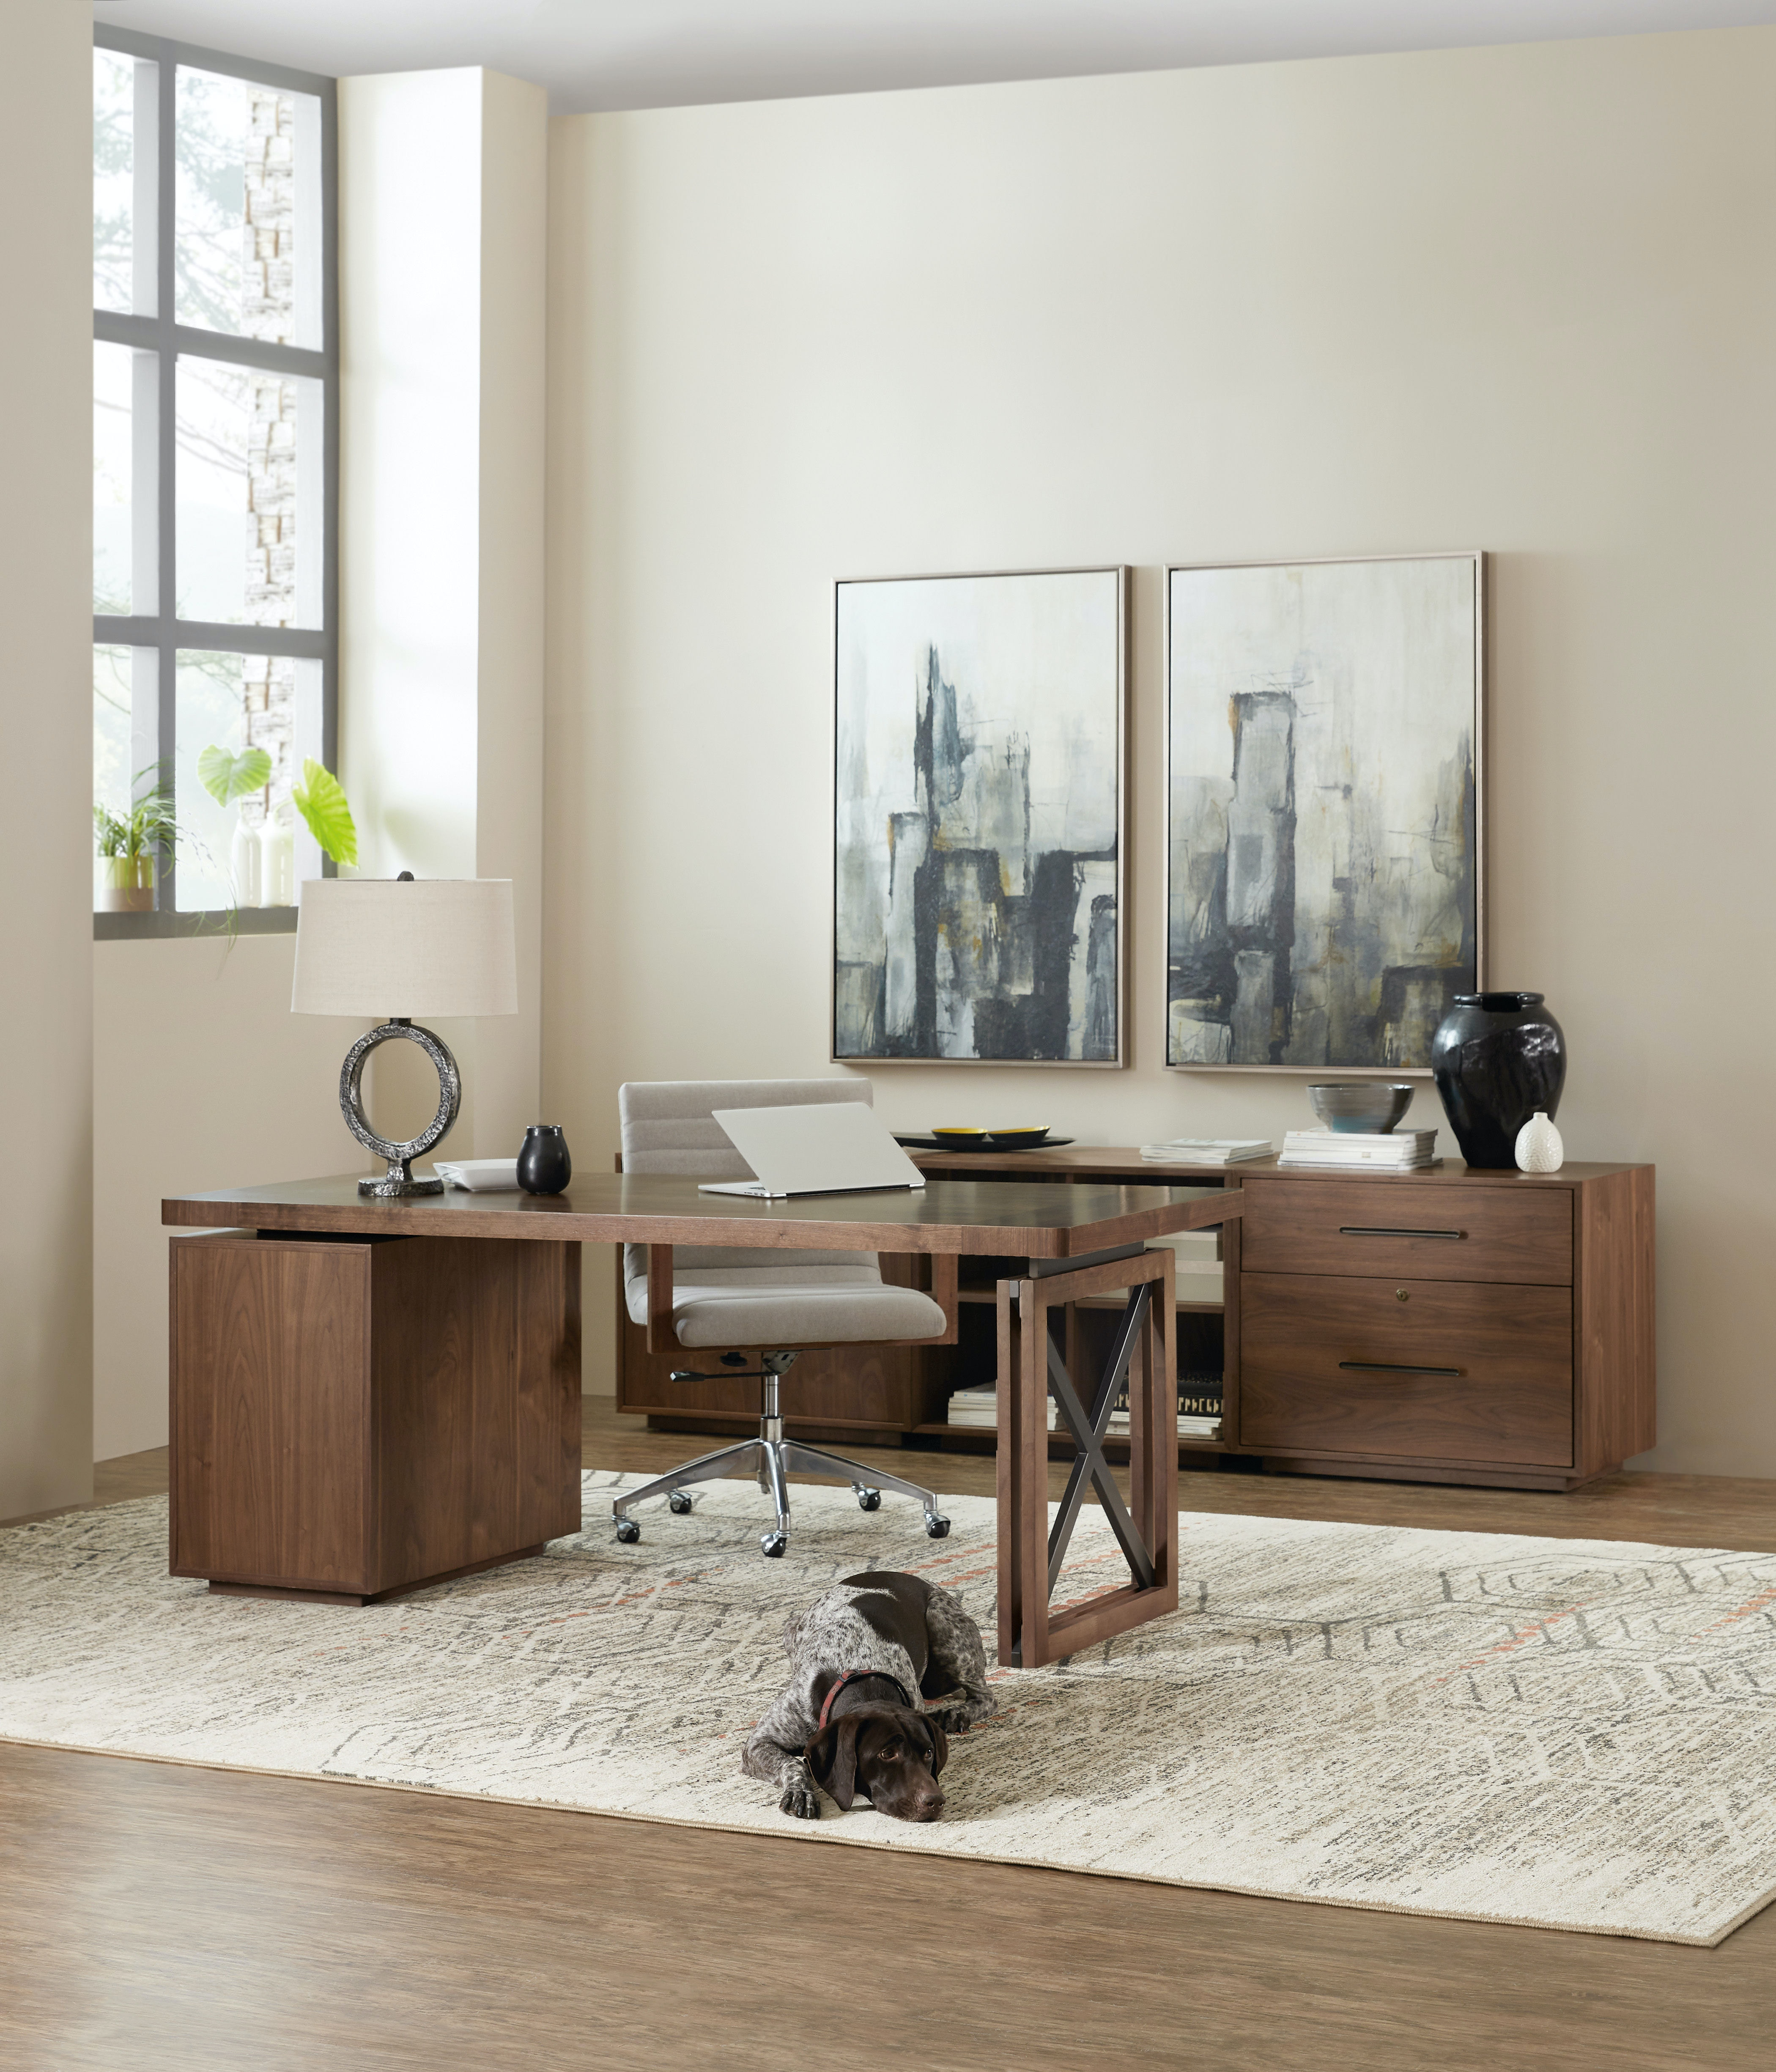 Exceptionnel Hooker Furniture Elon Modular Home Office